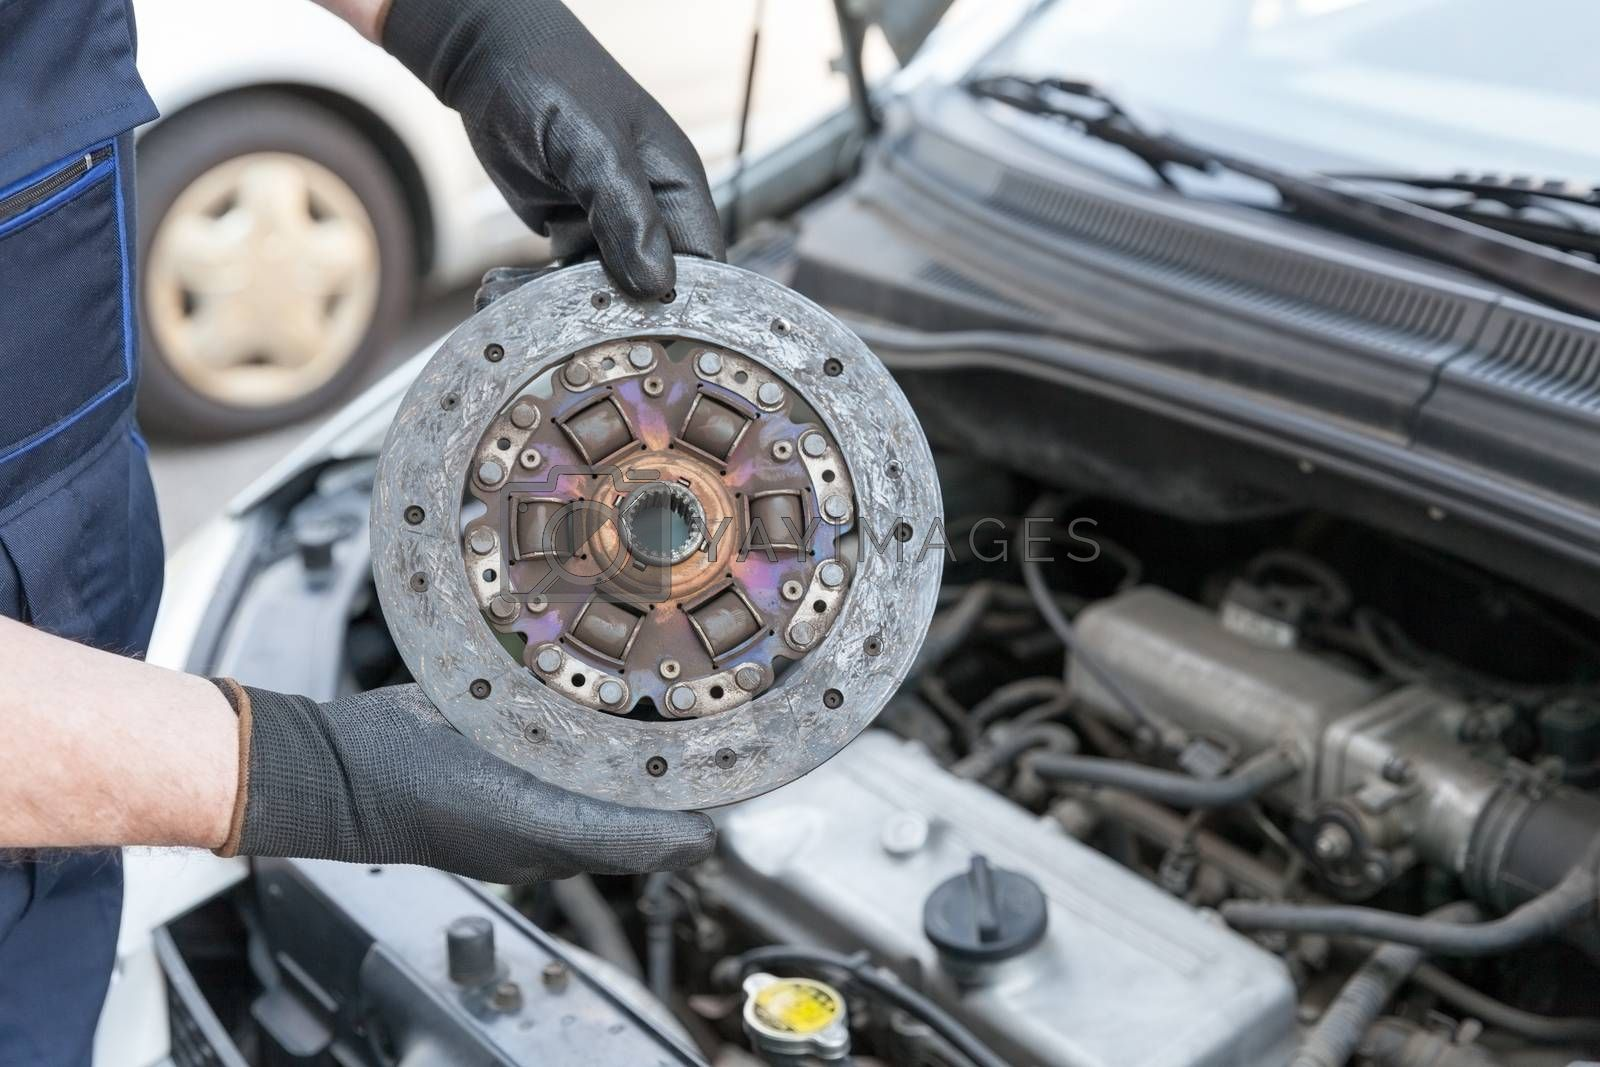 Auto mechanic wearing protective work gloves holds old clutch disc over  a car engine